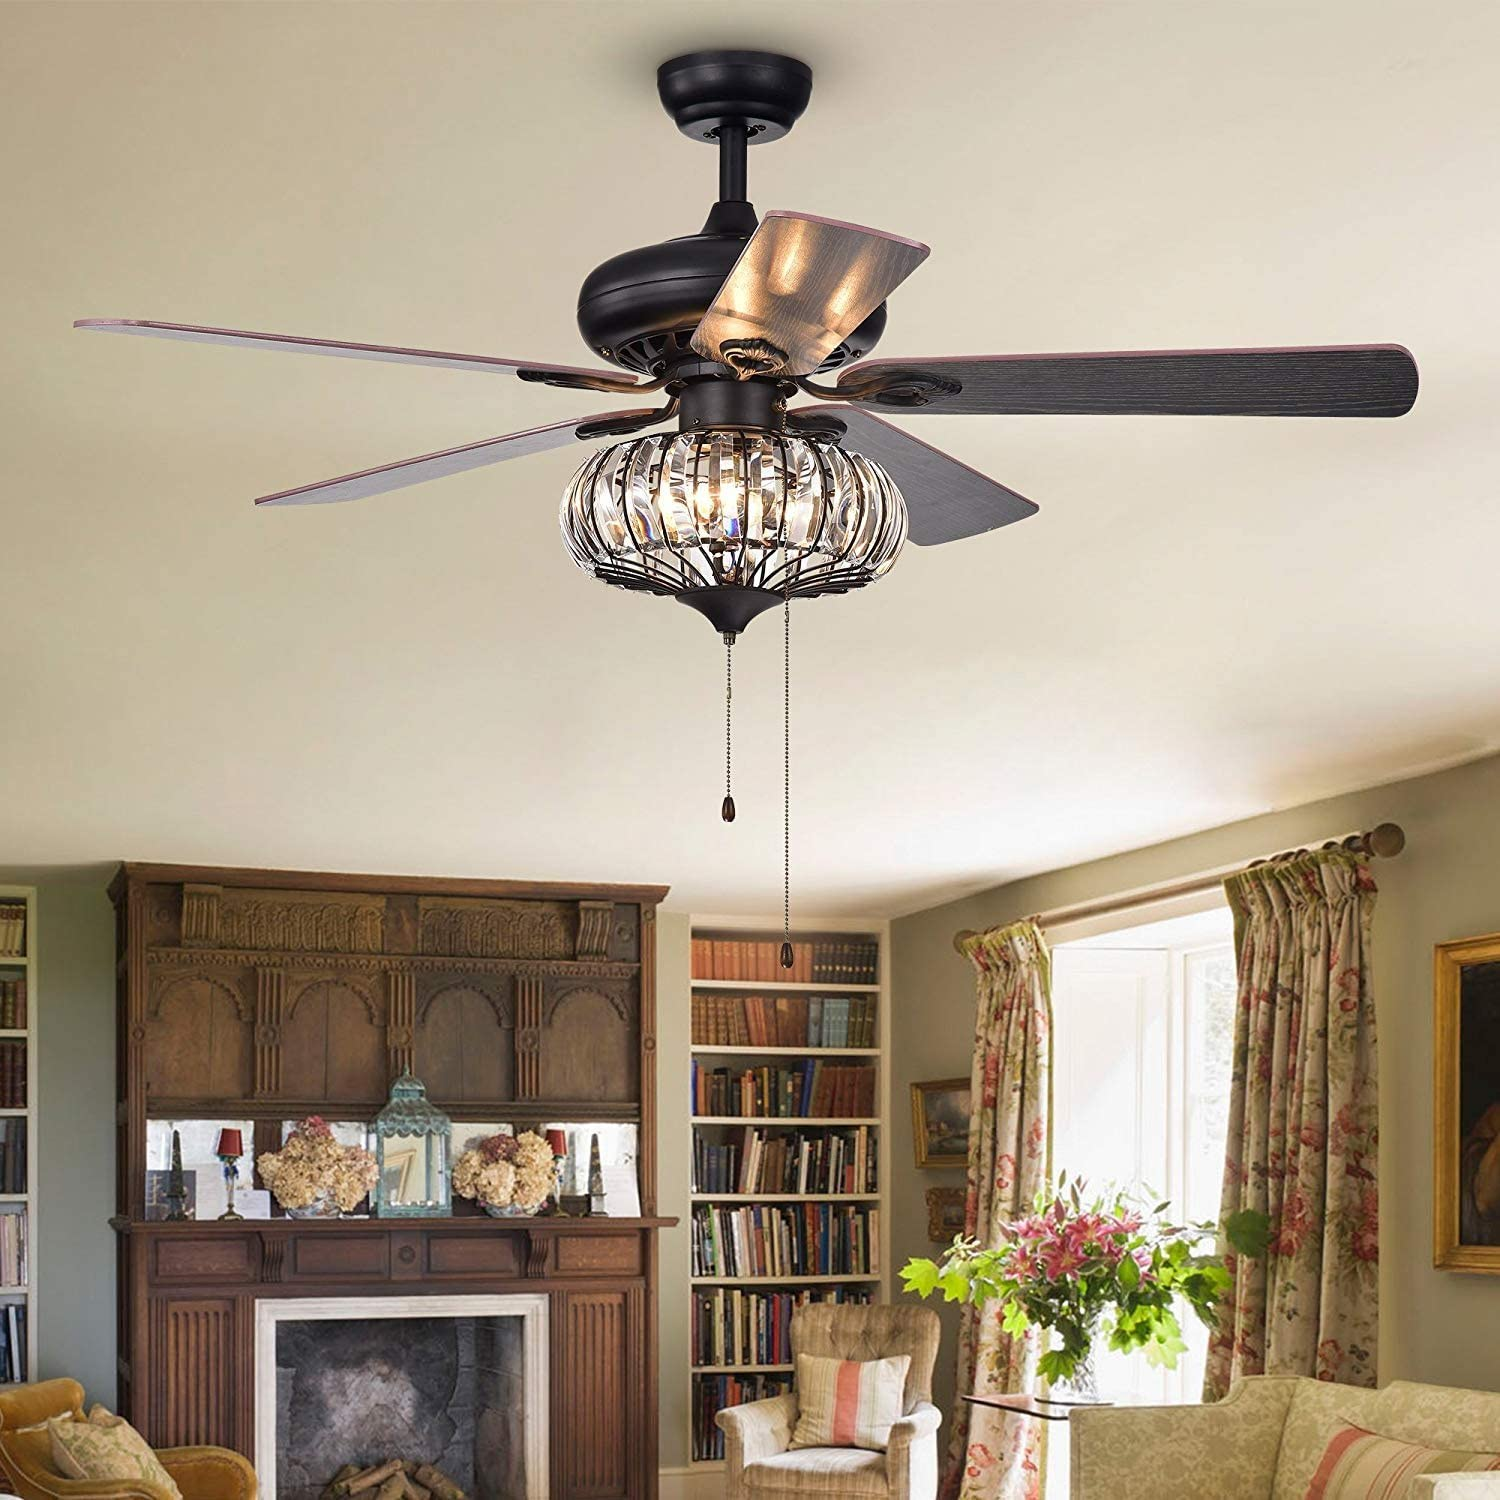 MORE CHANGE Crystal Industrial Ceiling Fan Light Iron Cage Fan Chandelier Pull Chain 3-Lights Fan with 5 Reversible Wood Blade for Living Room 52 Inch Bronze Black Stretch